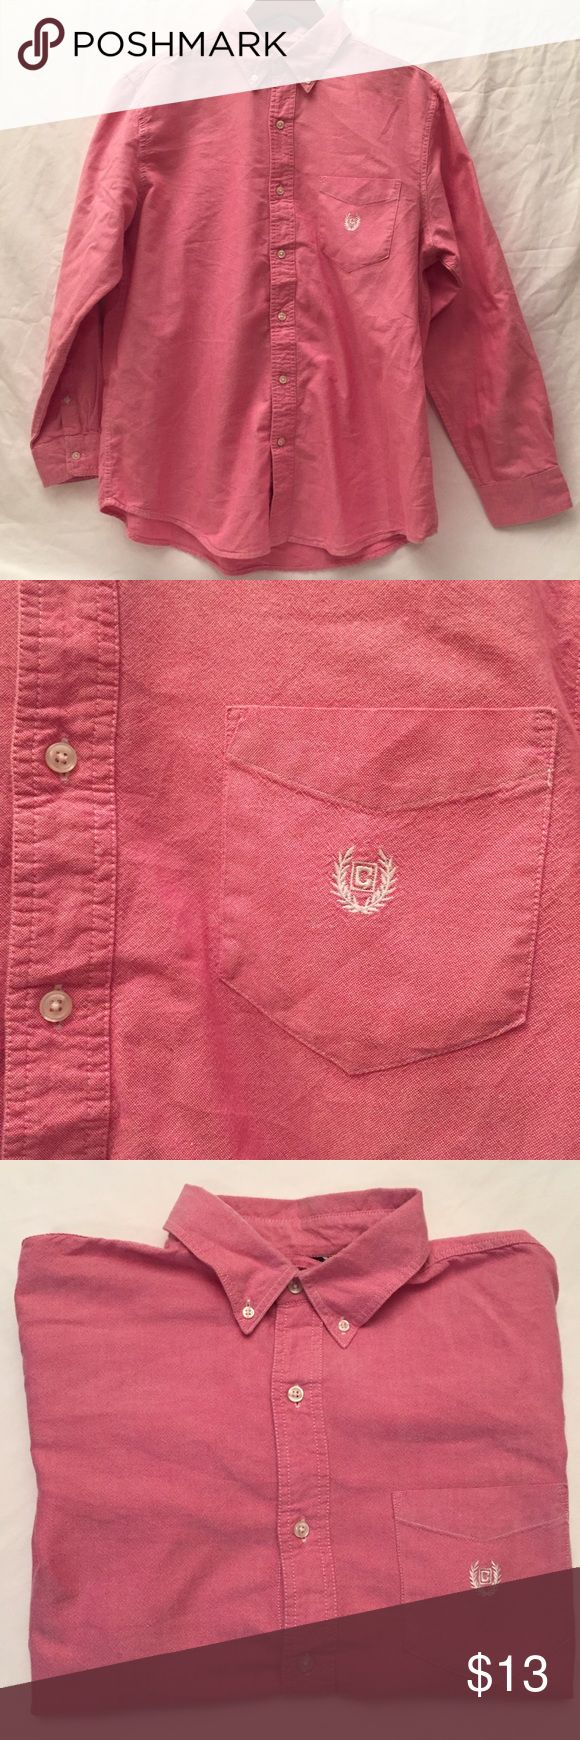 Men's Chaps Shirt Light red button up / Size Large Chaps Shirts